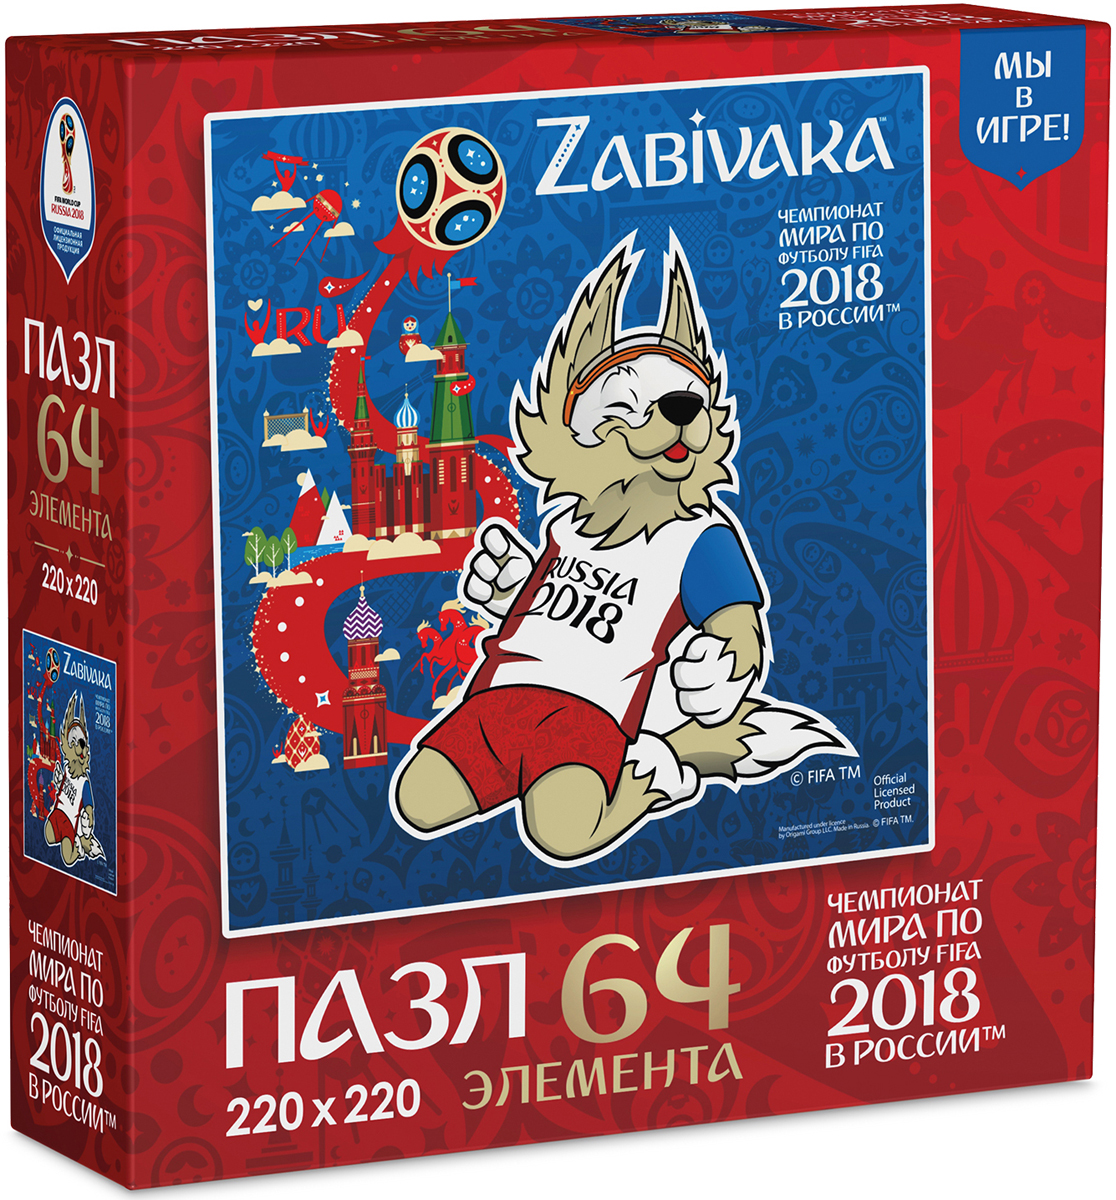 FIFA World Cup Russia 2018 Пазл Забивака Мы выиграли 03792 значок 2018 fifa world cup russia™ 2018 fifa world cup russia™ fi029dubags7